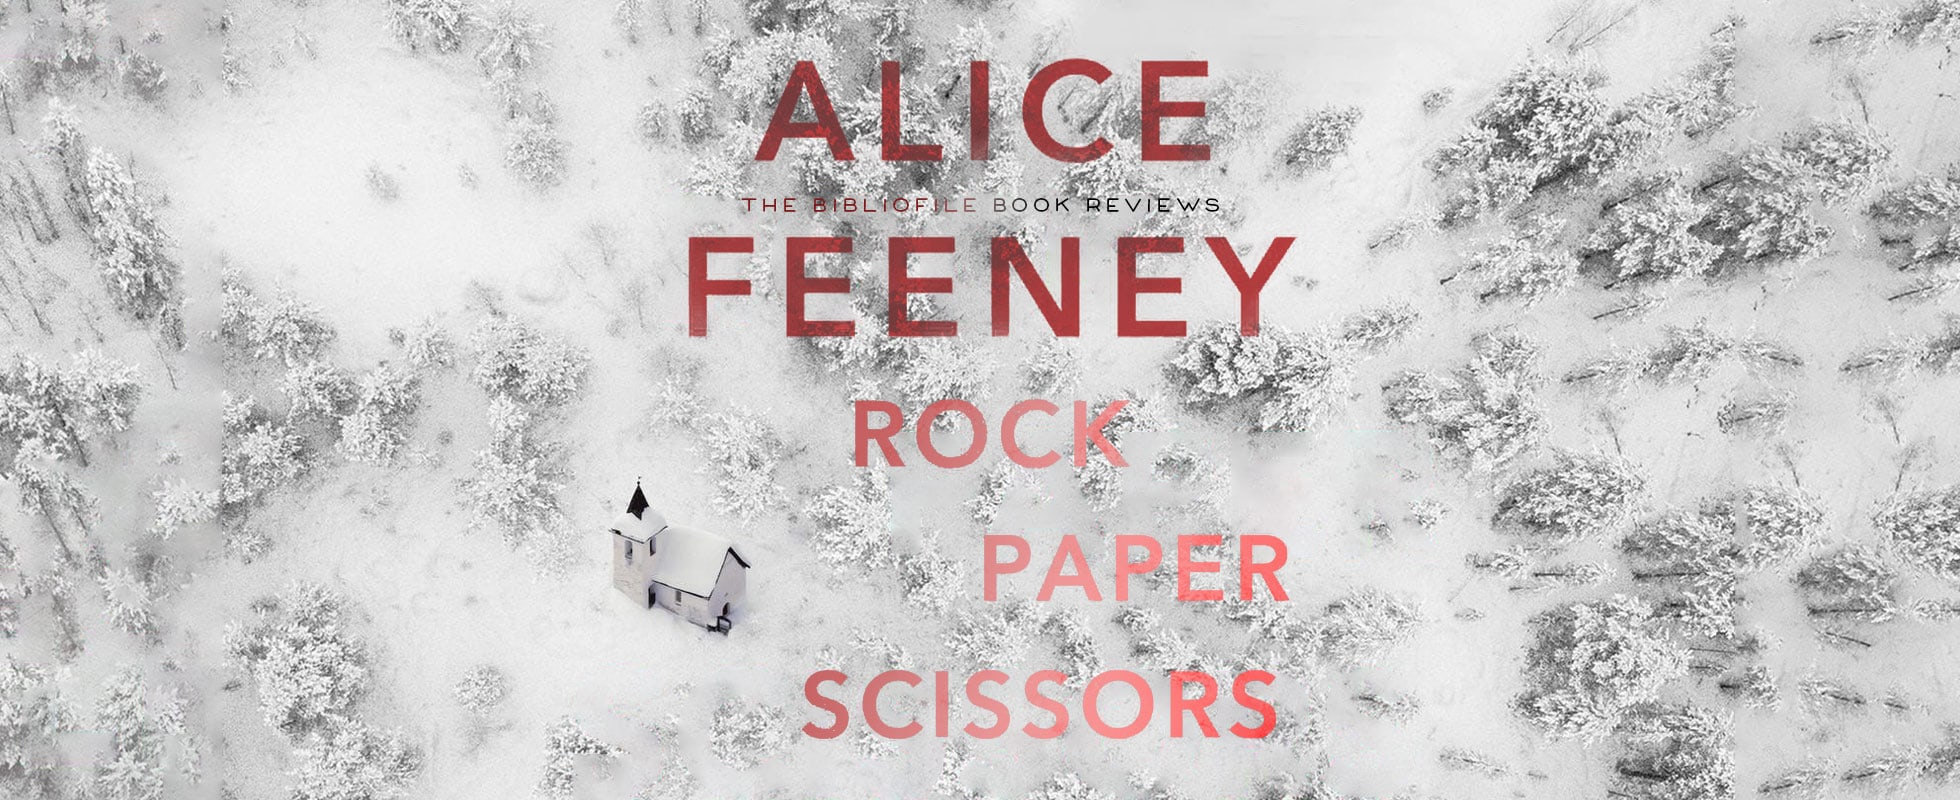 rock paper scissors by alice feeney book review plot summary synopsis recap spoilers ending explanation